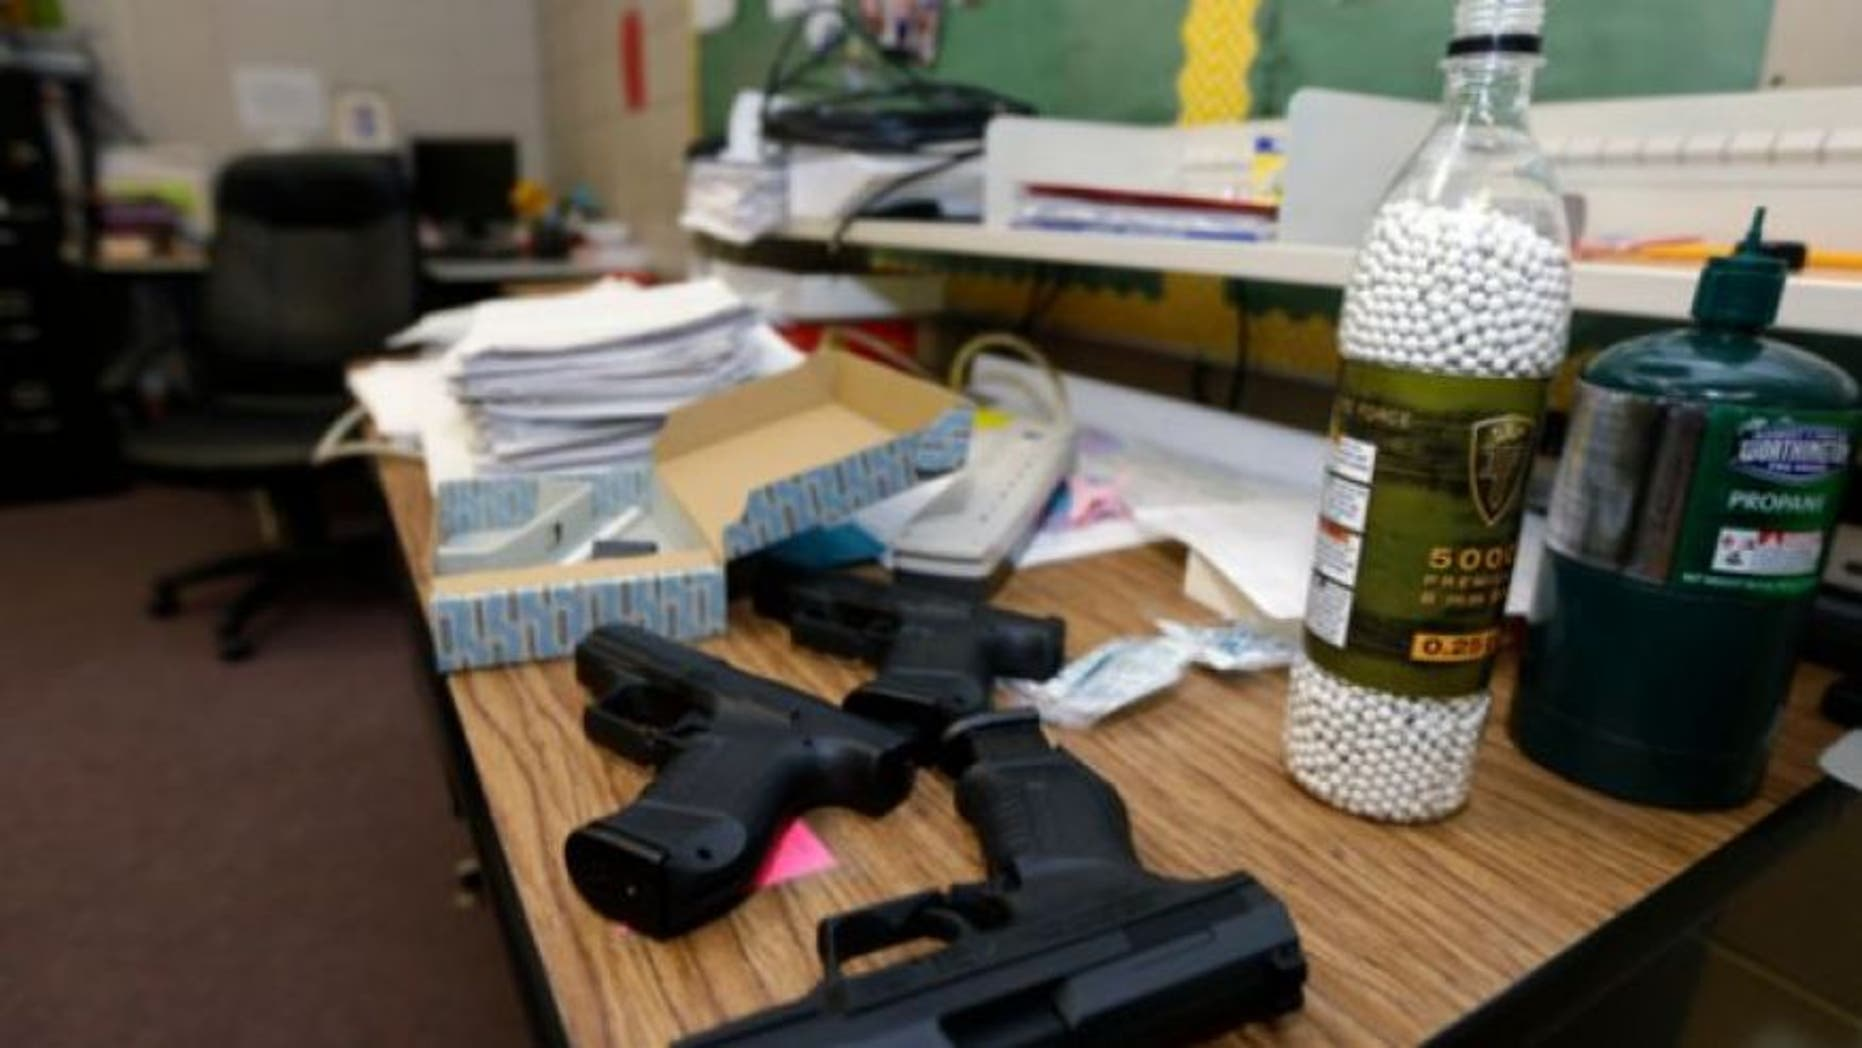 FILE: July 11, 2013: Practice air-powered handguns sit on a teacher's desk in a classroom at Clarksville High School in Clarksville, Ark.